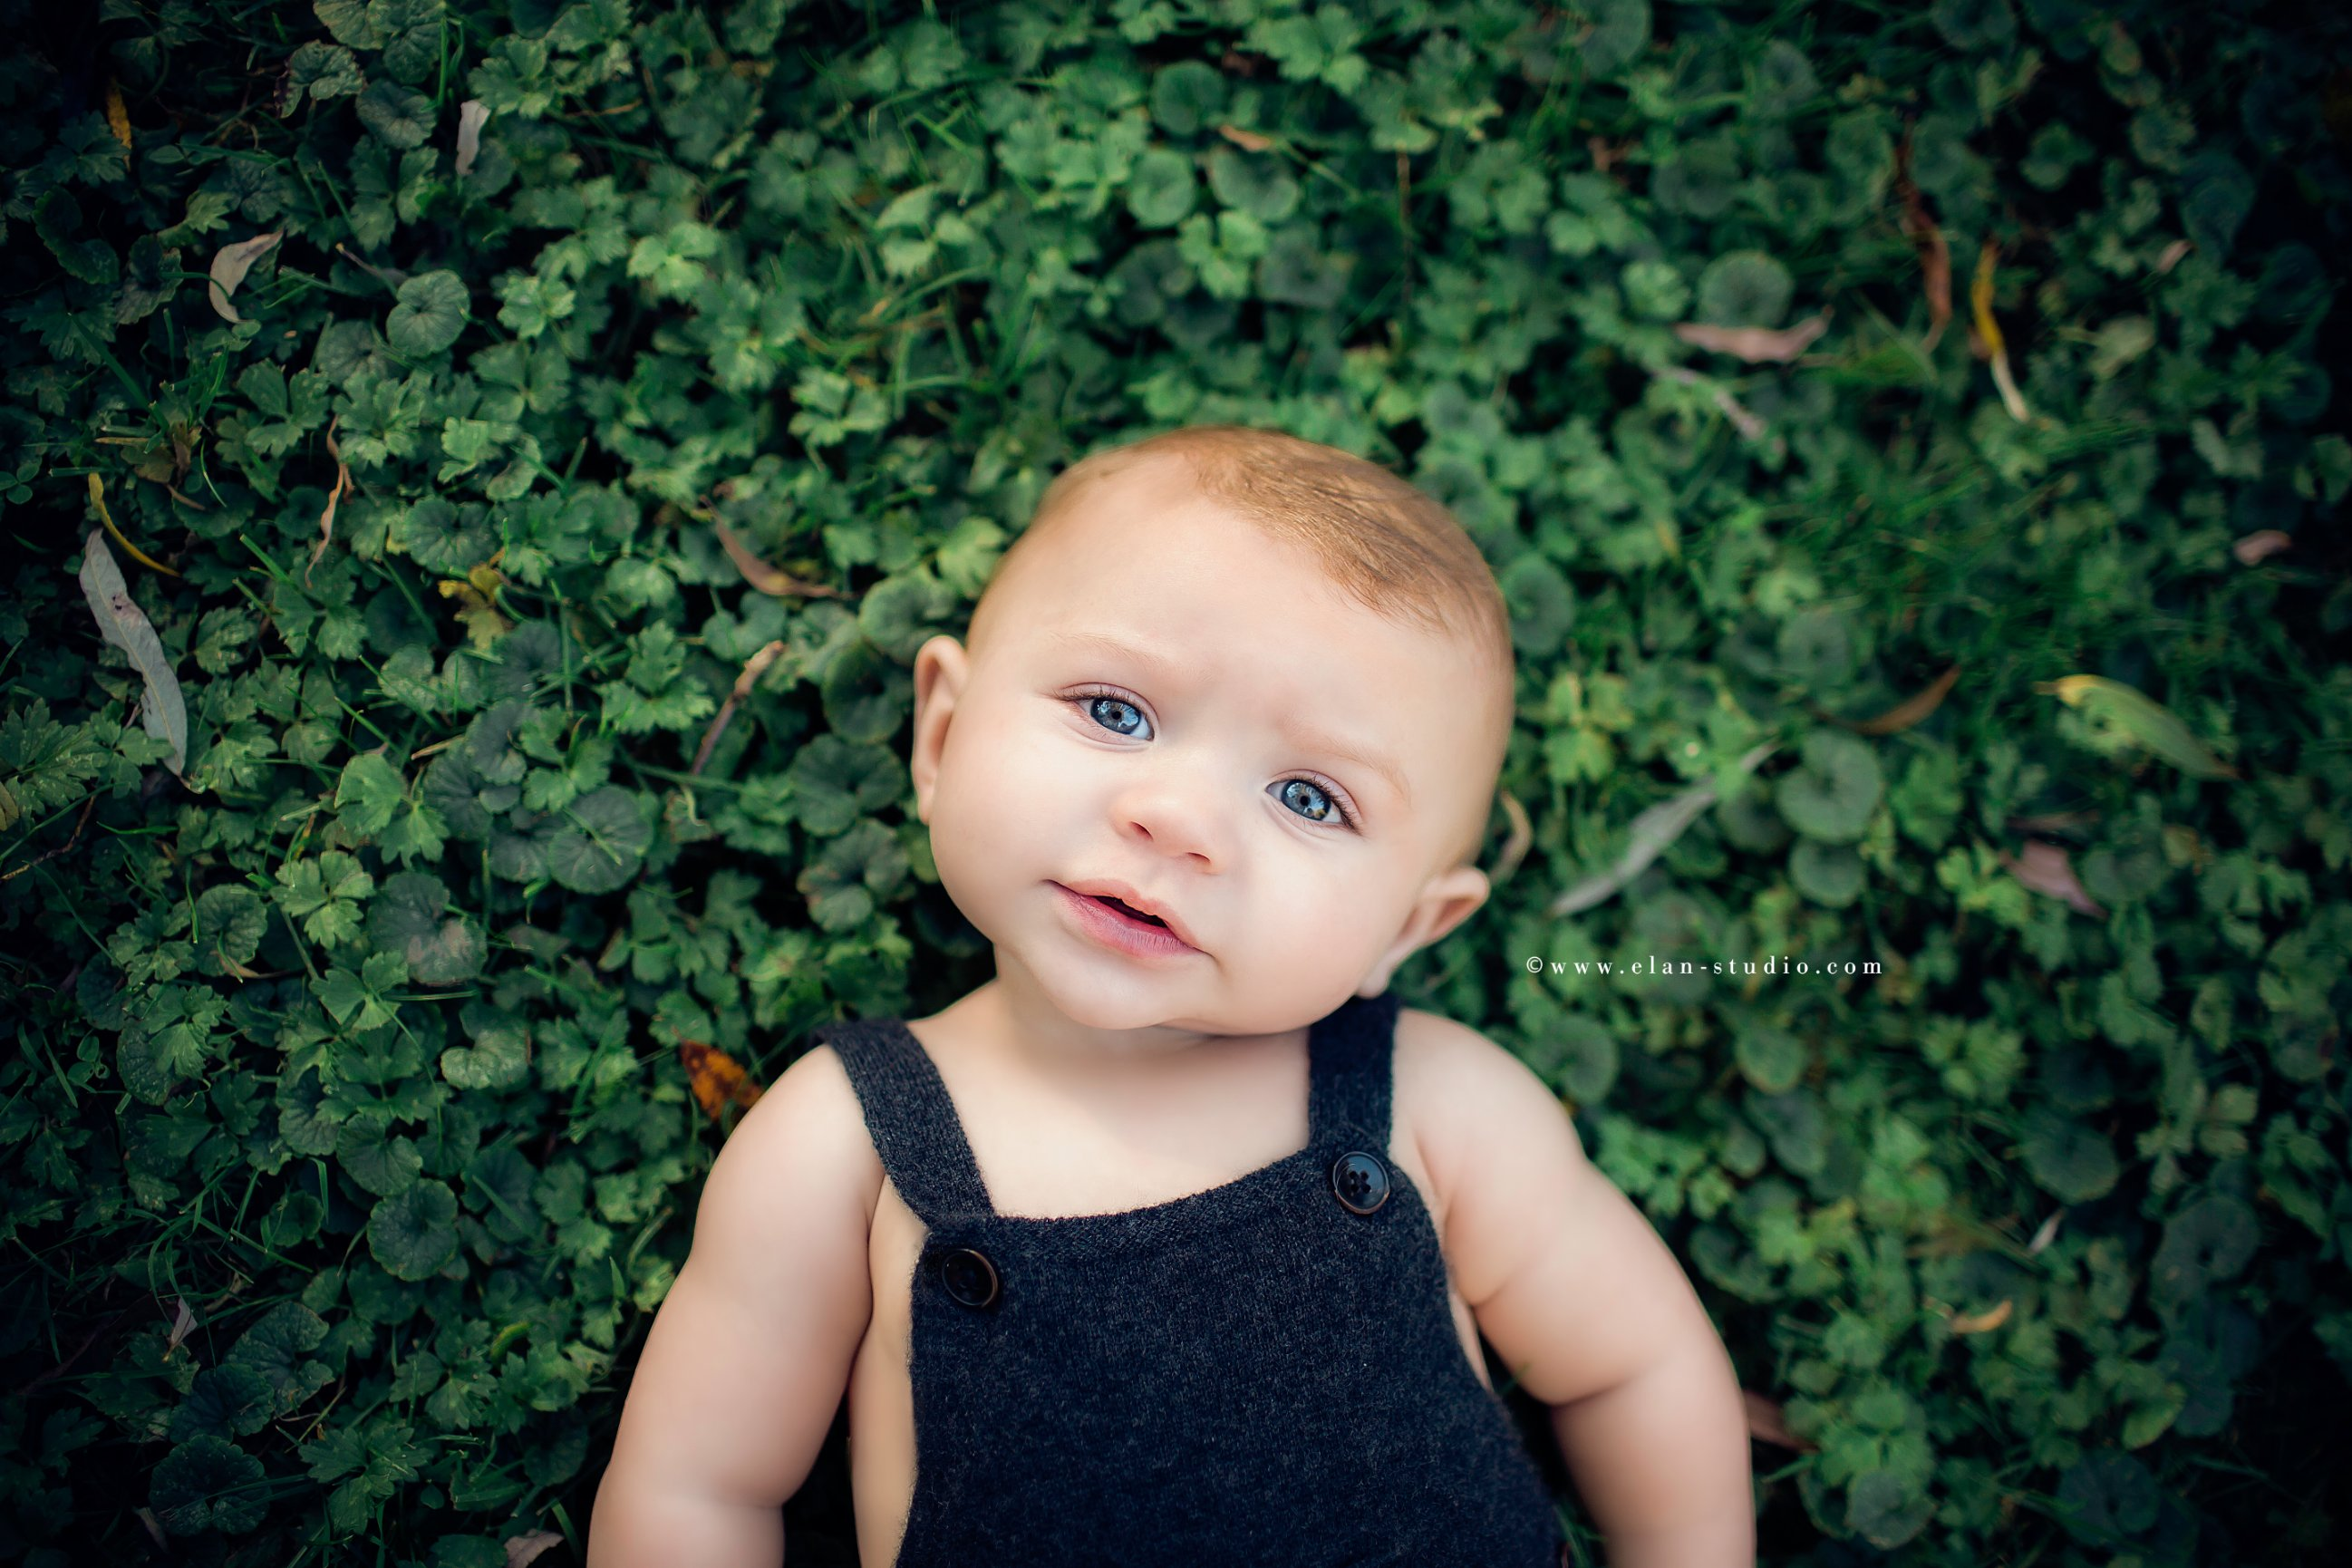 blue eyed baby boy in overalls, on clover bed